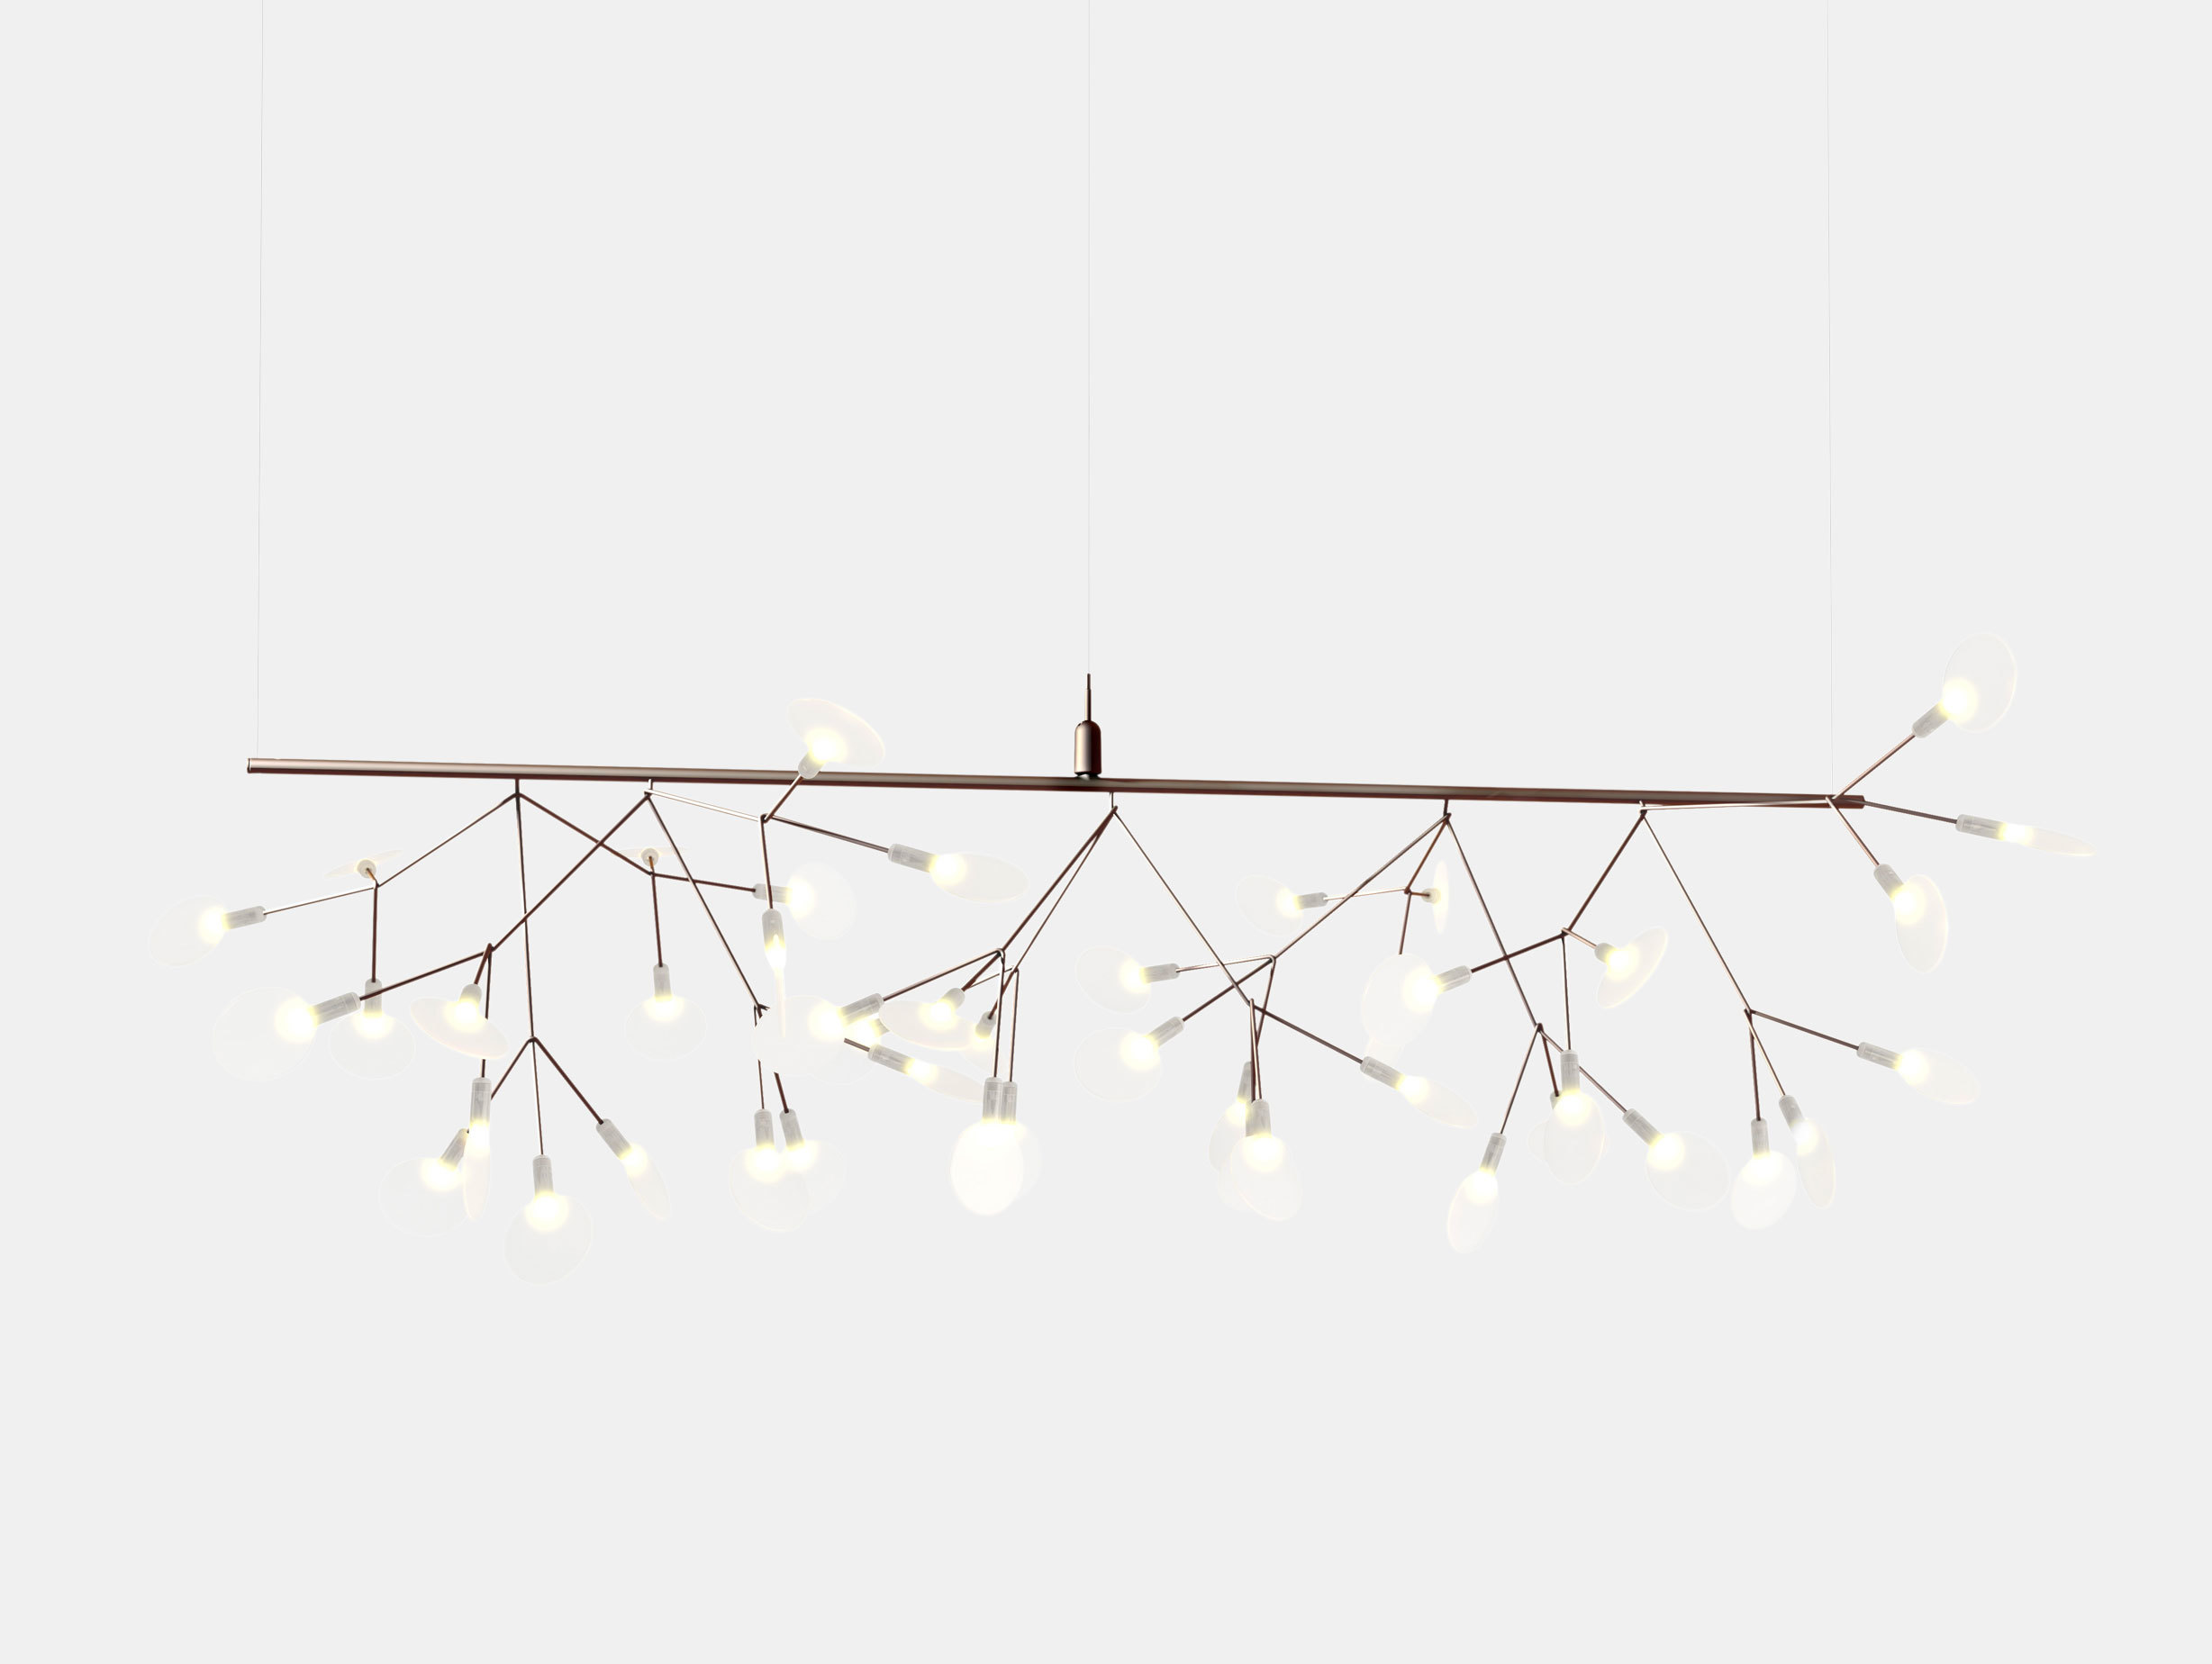 Heracleum Endless Suspension Light image 1